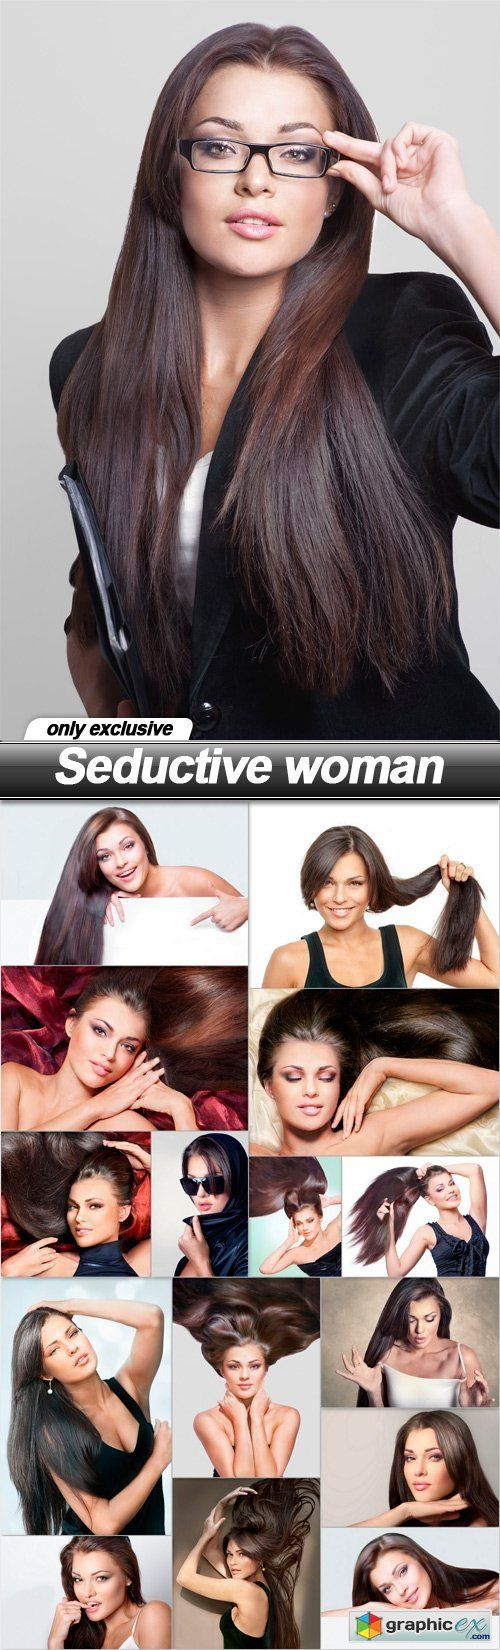 Seductive woman  16 UHQ JPEG  stock images